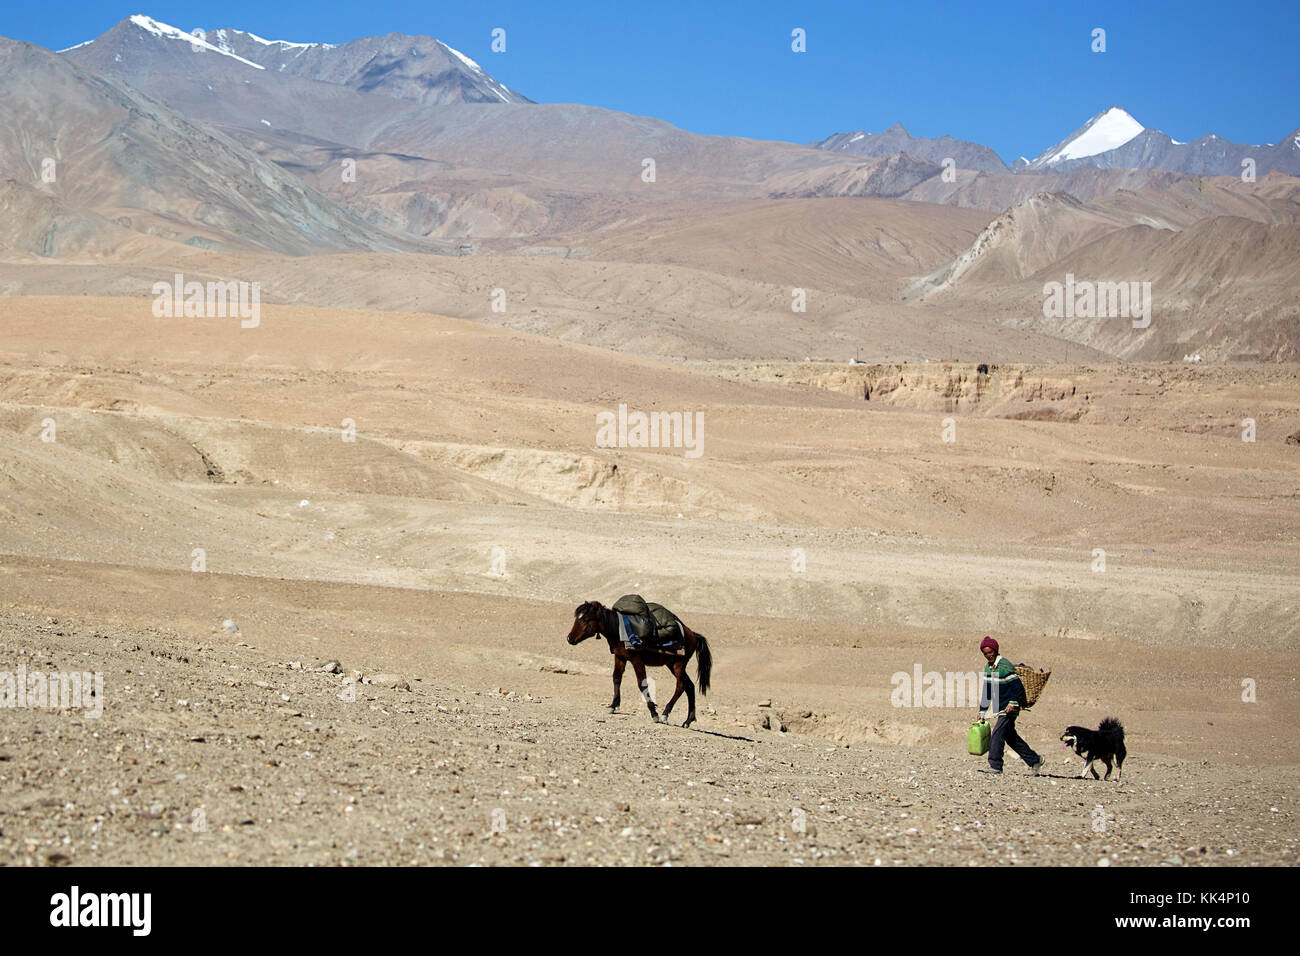 Local man with a dog and a mule - traditional way of transport, Ladakh, Jammu and Kashmir, India. - Stock Image